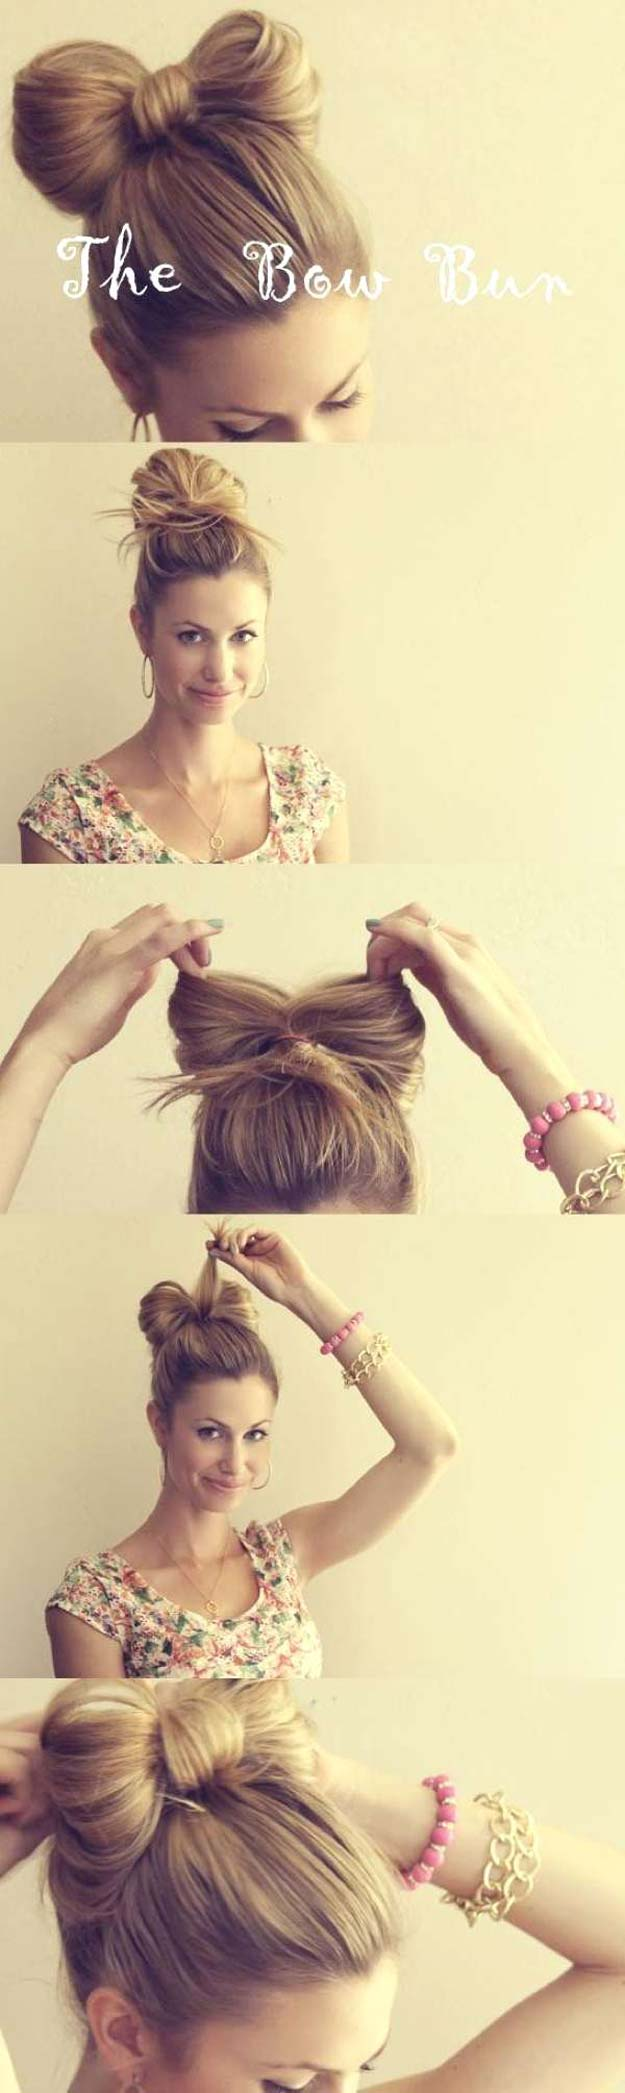 Cool and Easy DIY Hairstyles - The Hair Bow - Quick and Easy Ideas for Back to School Styles for Medium, Short and Long Hair - Fun Tips and Best Step by Step Tutorials for Teens, Prom, Weddings, Special Occasions and Work. Up dos, Braids, Top Knots and Buns, Super Summer Looks #hairstyles #hair #teens #easyhairstyles #diy #beauty